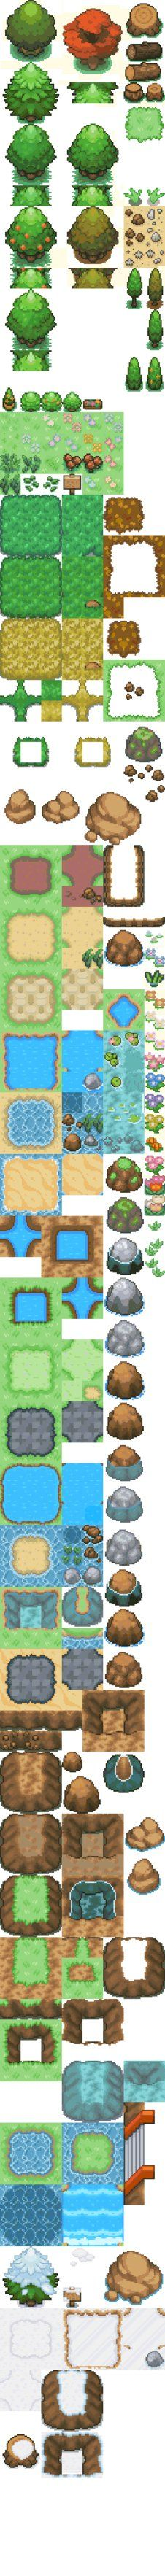 tileset pokemon RPGMAKER XP by kutoal on deviantART